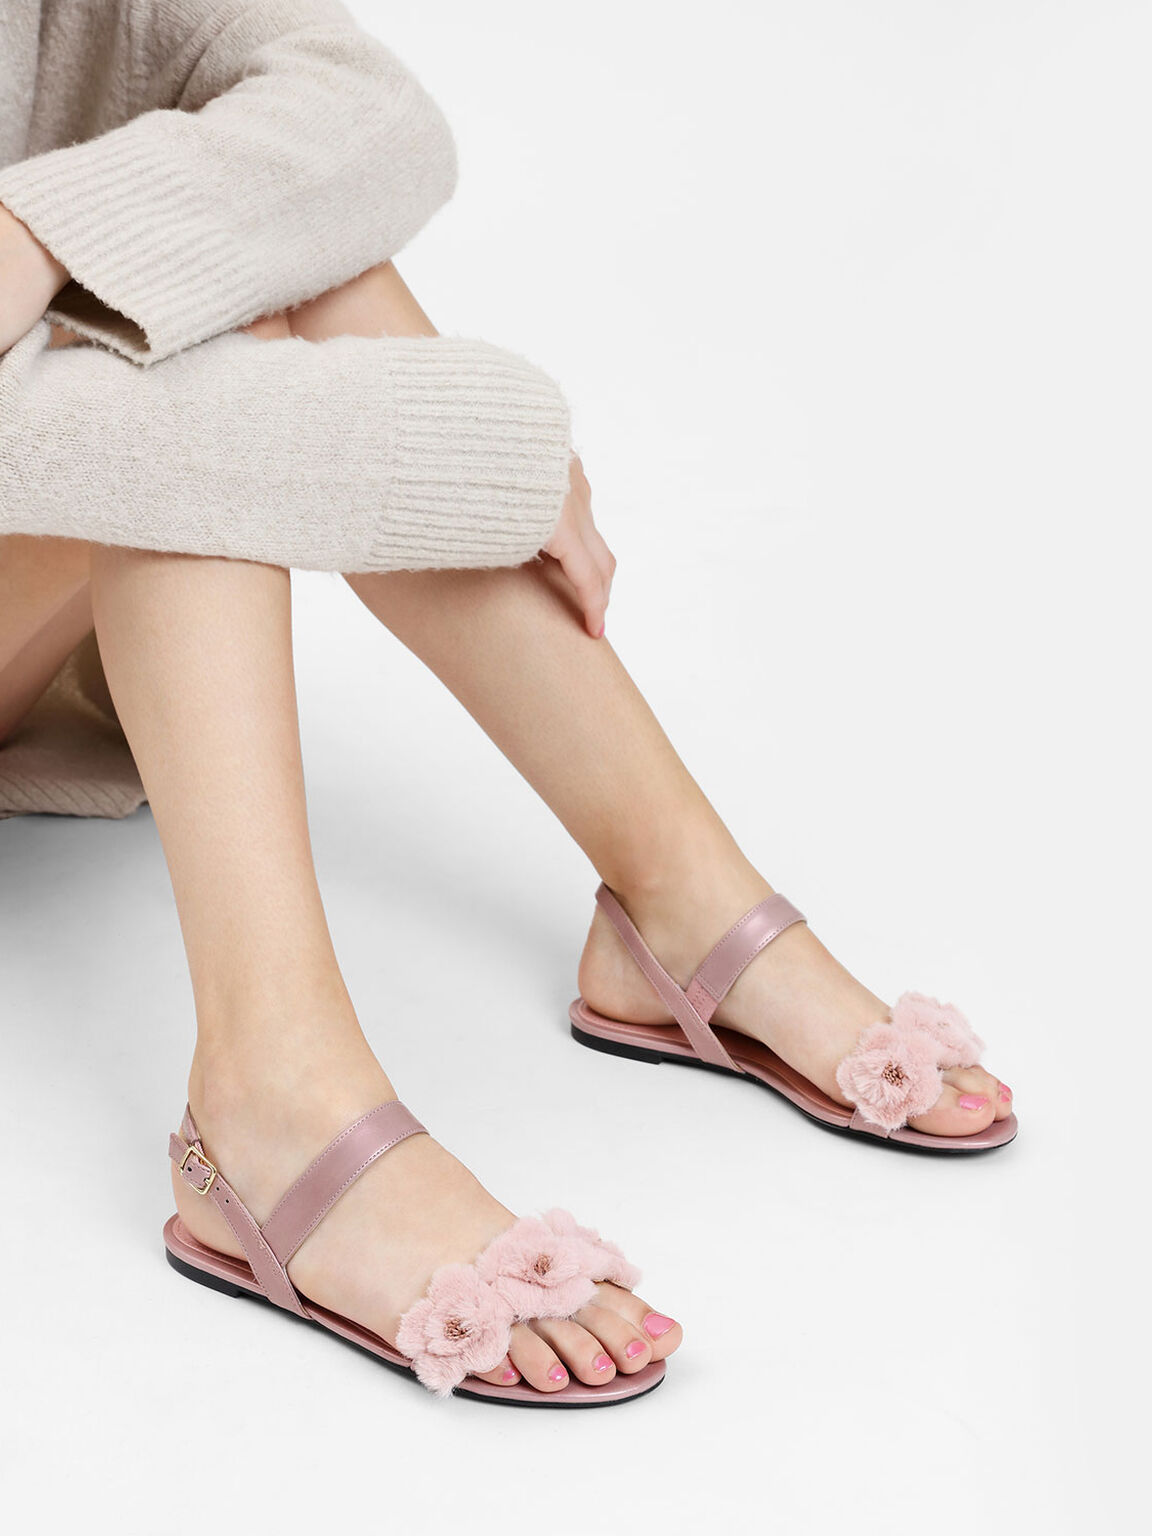 Furry Floral Detail Sandals, Rose Gold, hi-res